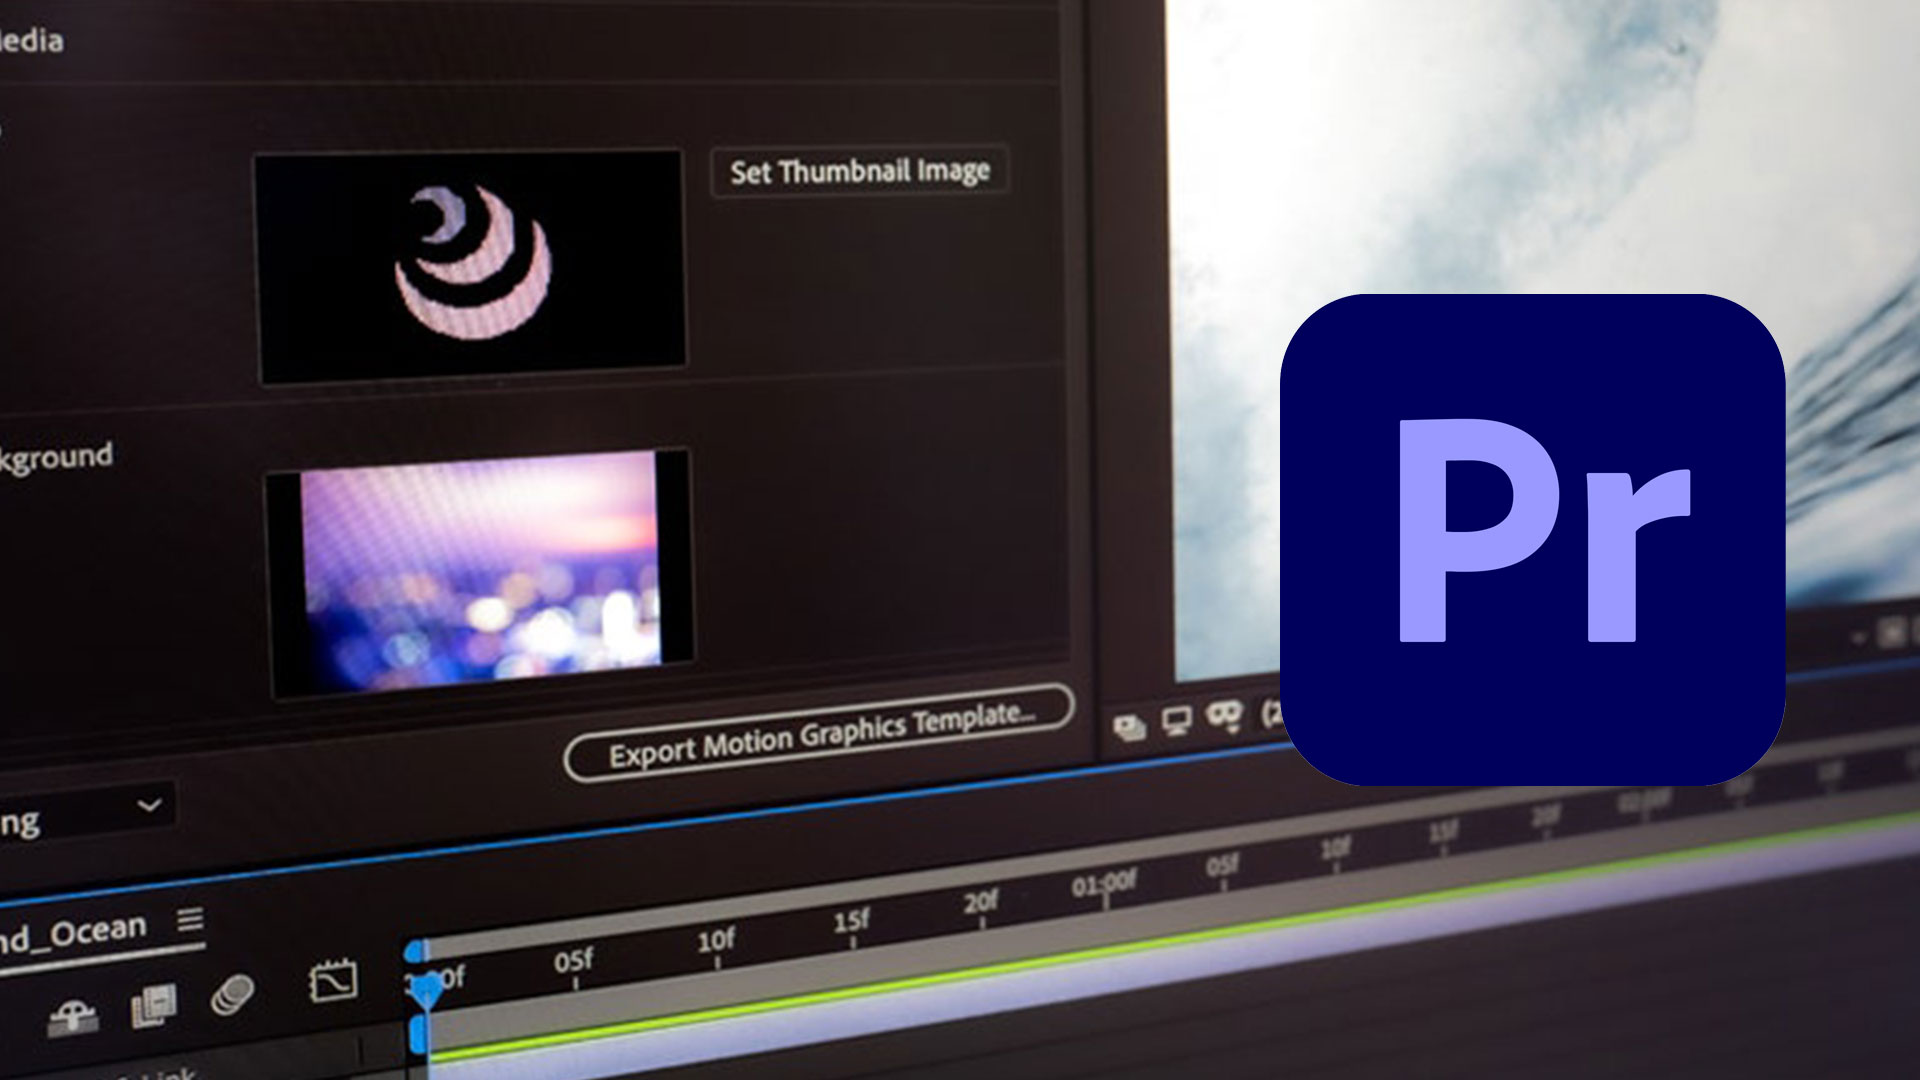 Adobe Premiere Pro 14 6 Quick Export 4x Faster Rendering With Amd Apu Cined